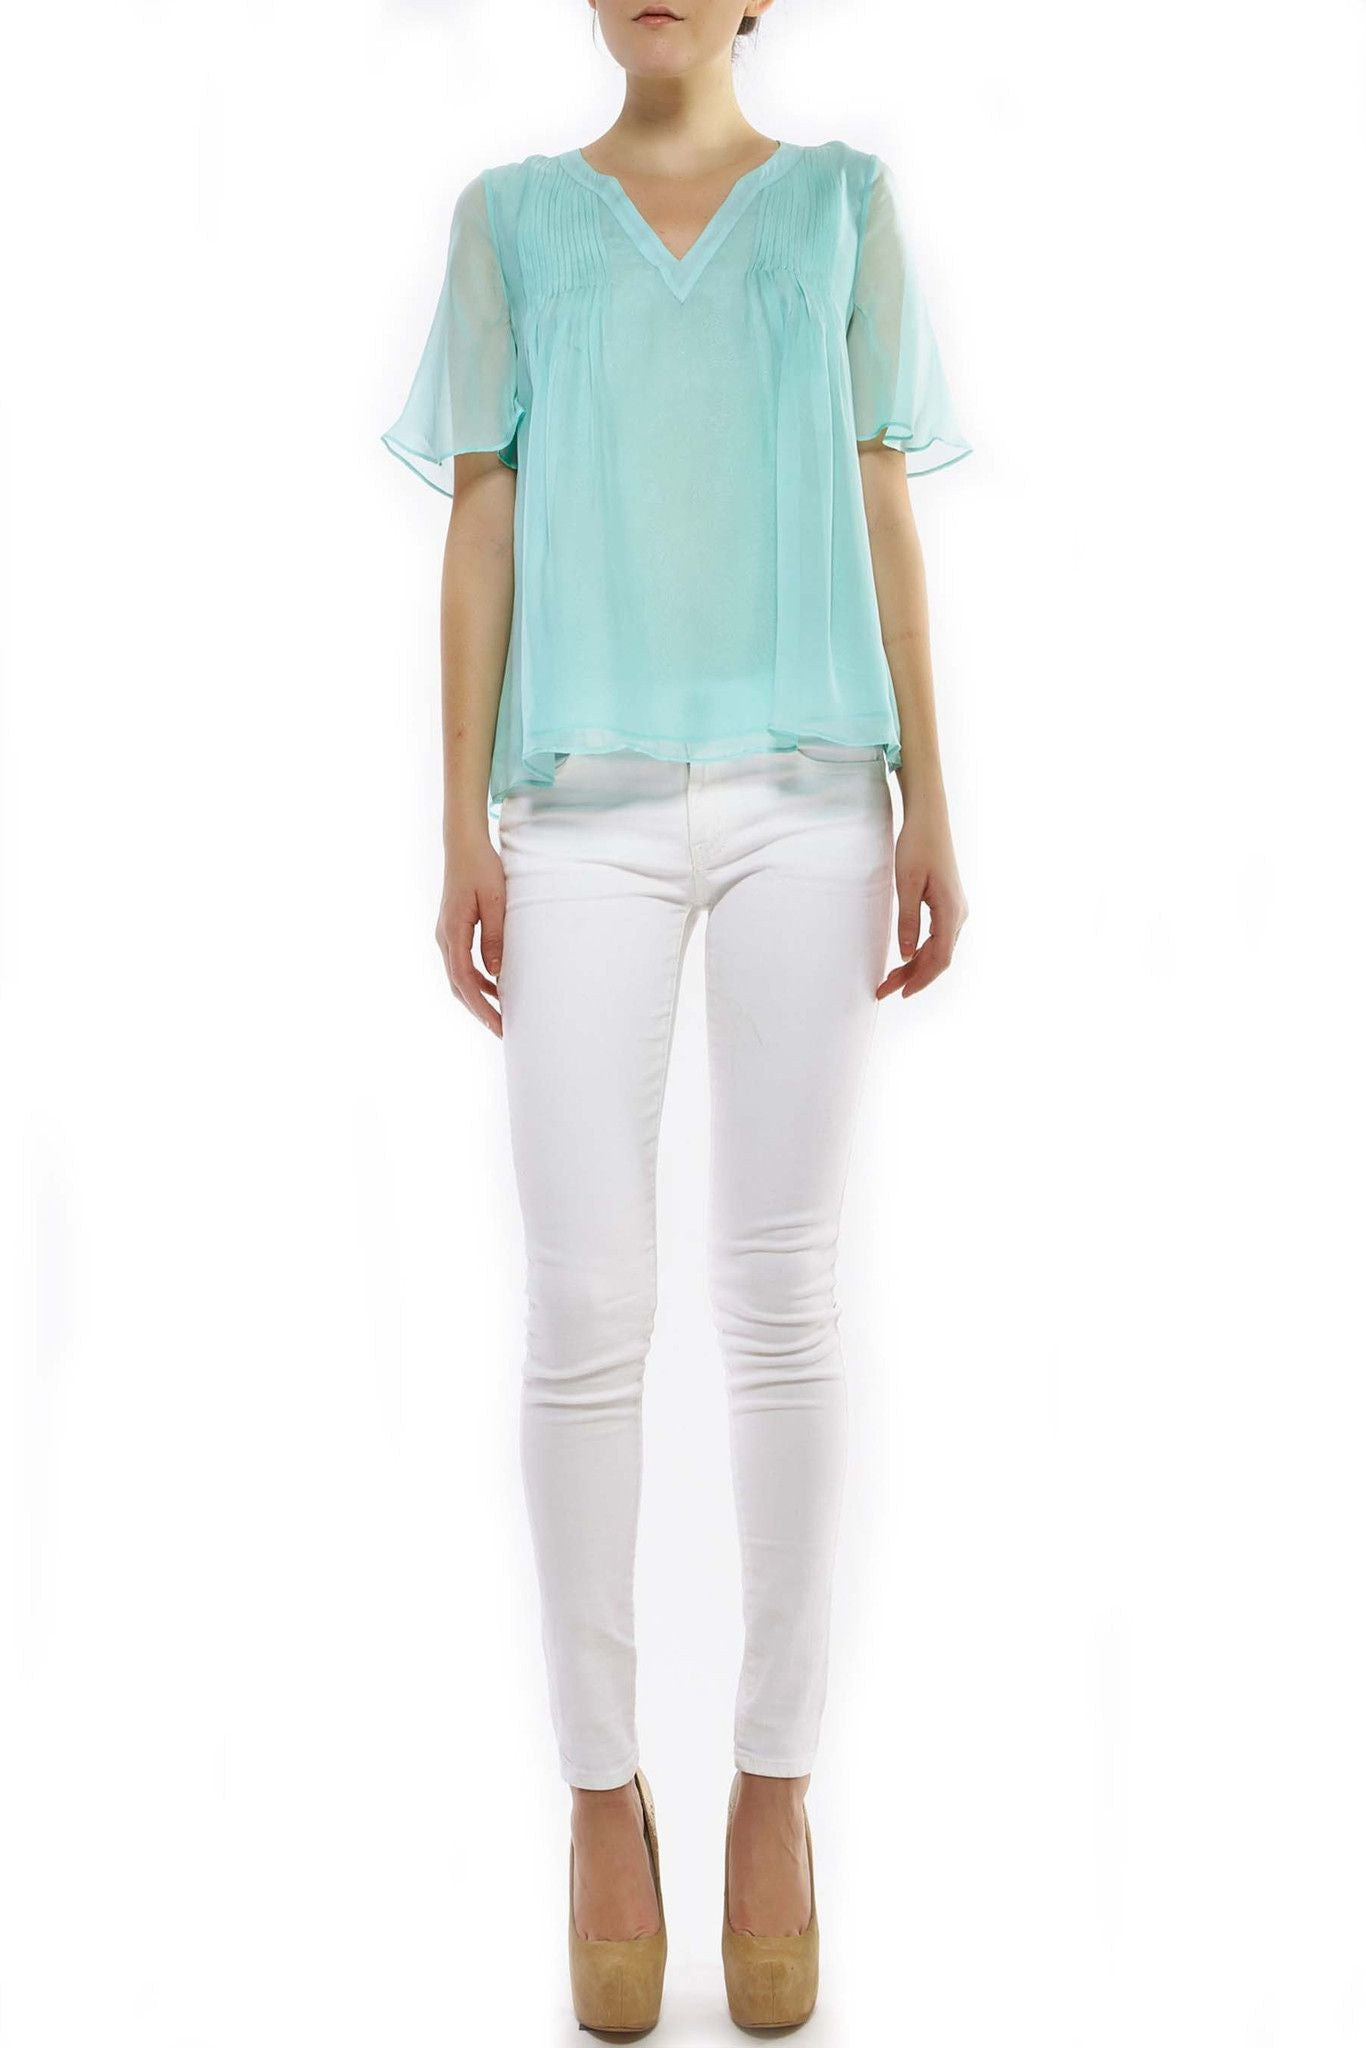 T322 BLAIR TOP W/ RUFFLE SLEEVES AND LINING DARK MINT